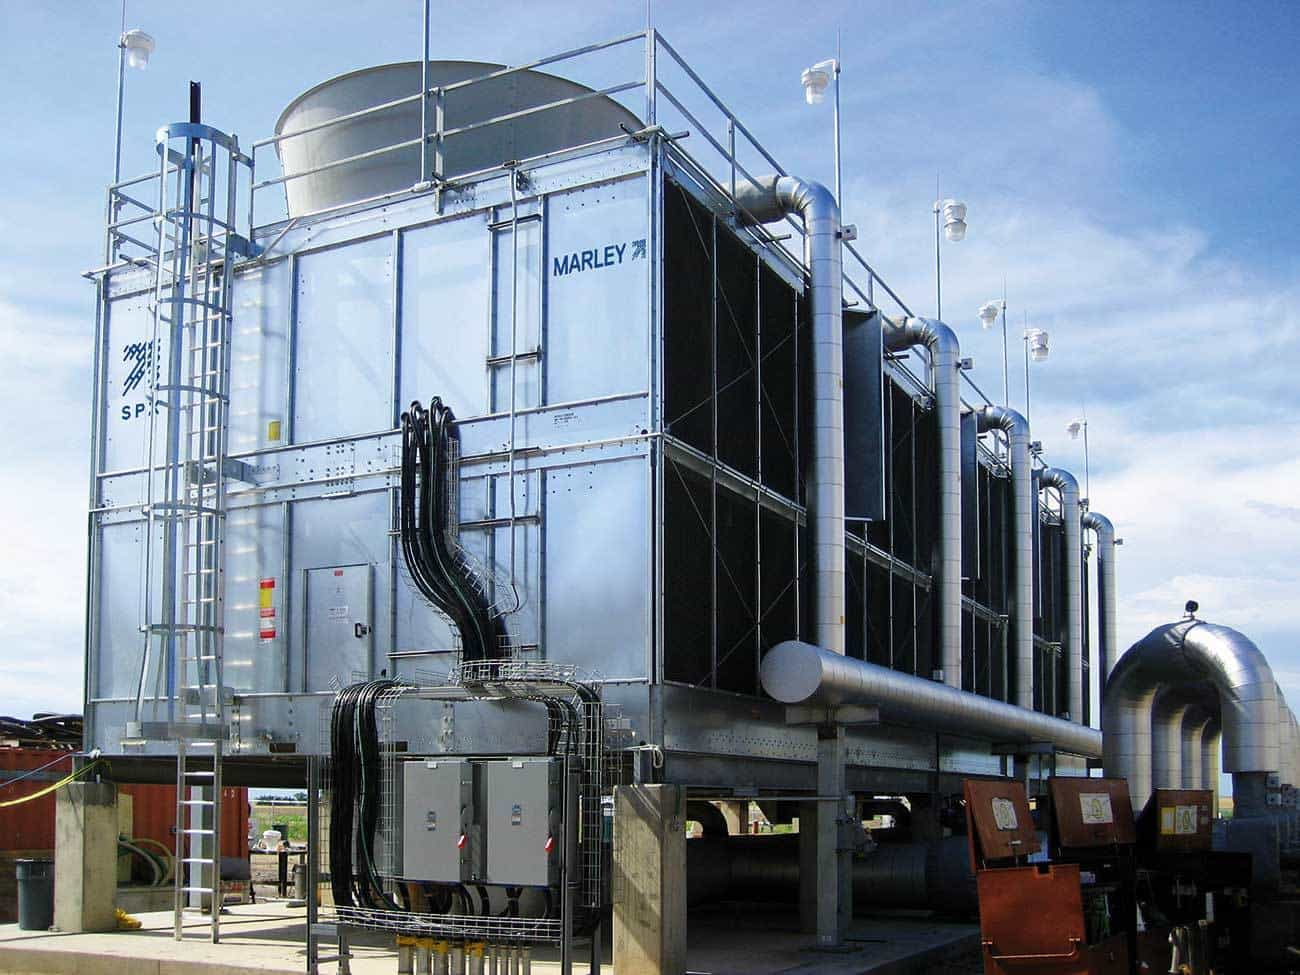 Figure 3 – FM Approved multi-cell Marley® cooling tower from SPX Cooling Technologies, Inc. is available as a factory-assembled or field-erected system. Reproduced with permission from SPX Cooling Technologies Inc.